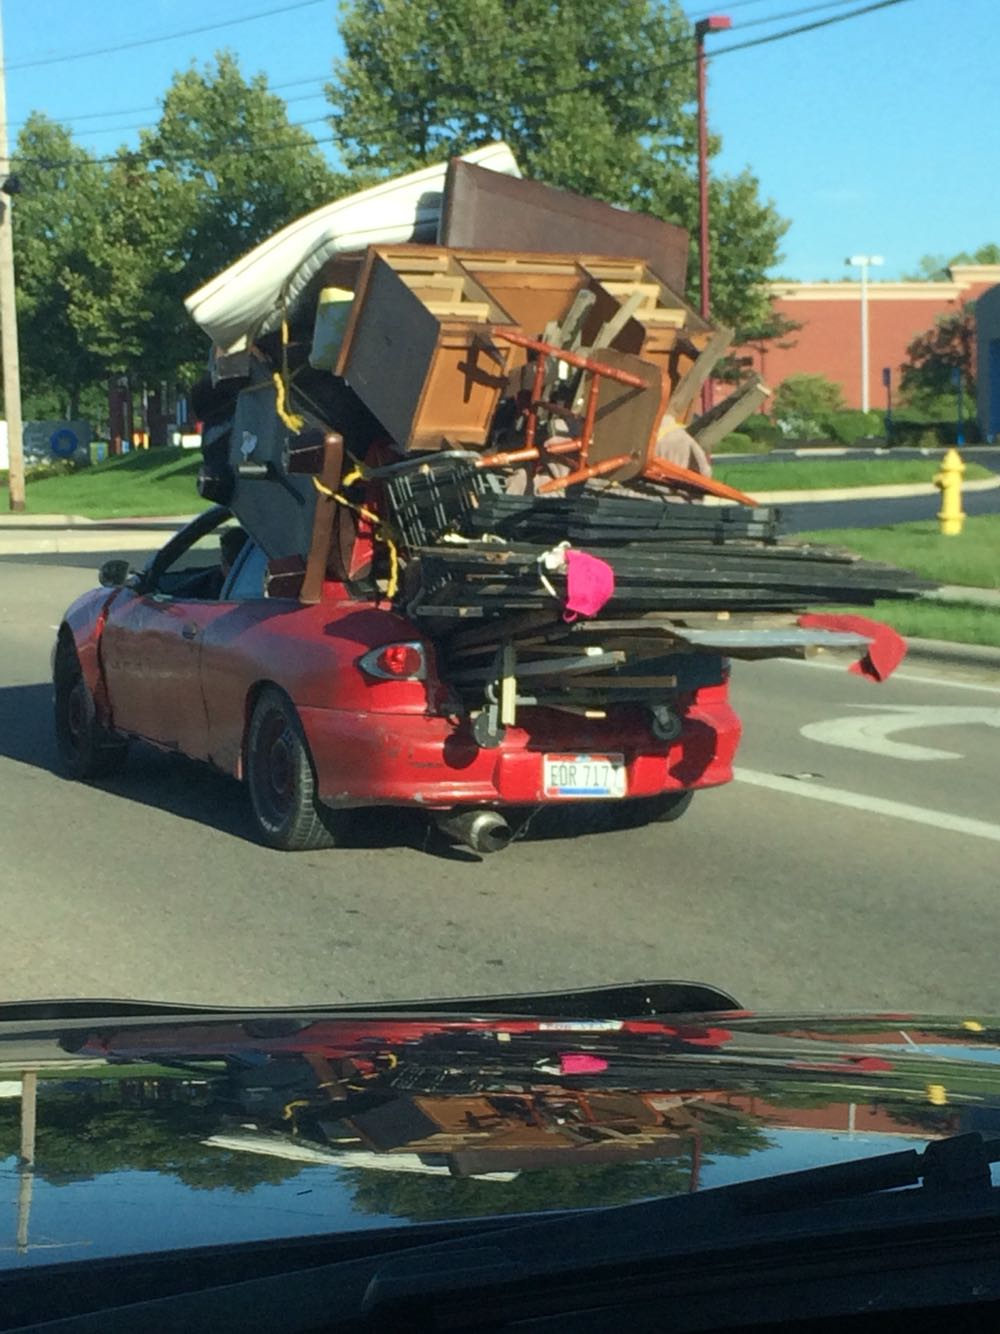 Extremely Overloaded car I saw on the way home from work